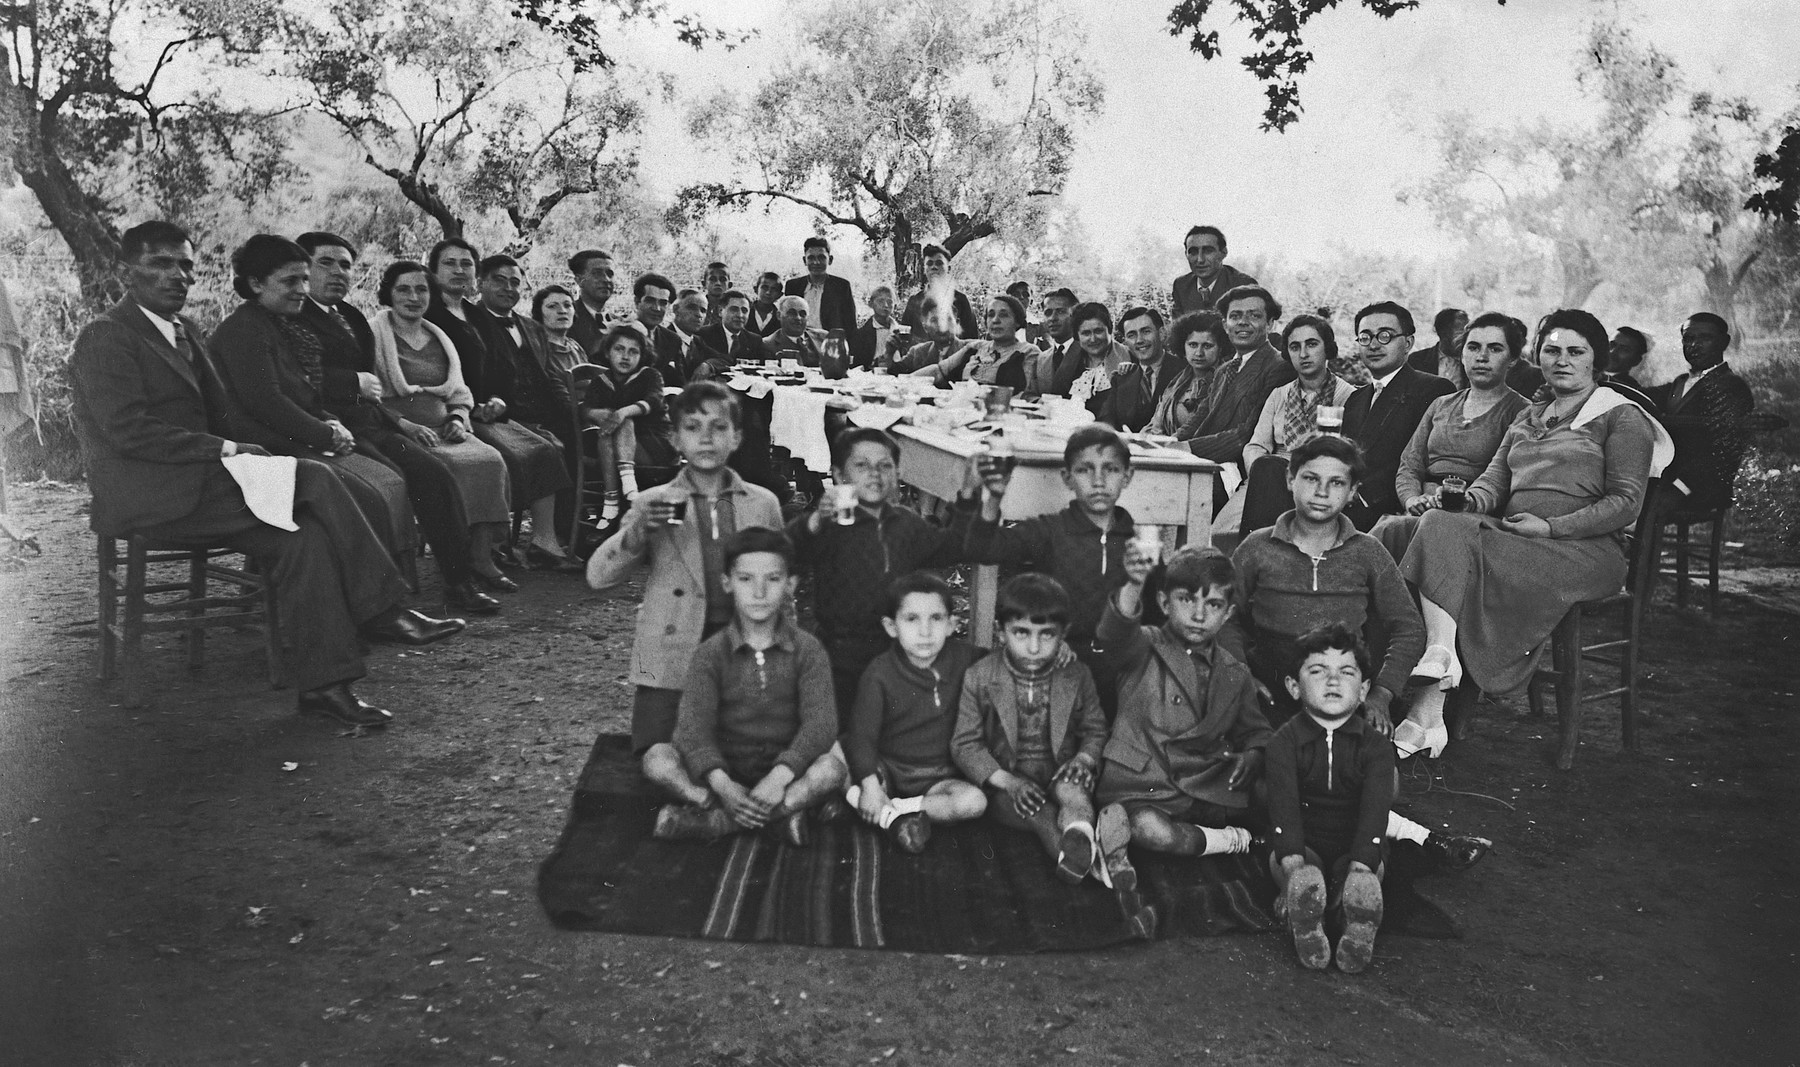 Employees and family of the National Bank of Greece in Arta gather for a group portrait during an outdoor celebration.  Michael Matsas is seated in the front, second from the left.  His parents, Leon and Esther Matsas, are seated behind him, third and fourth from the left.